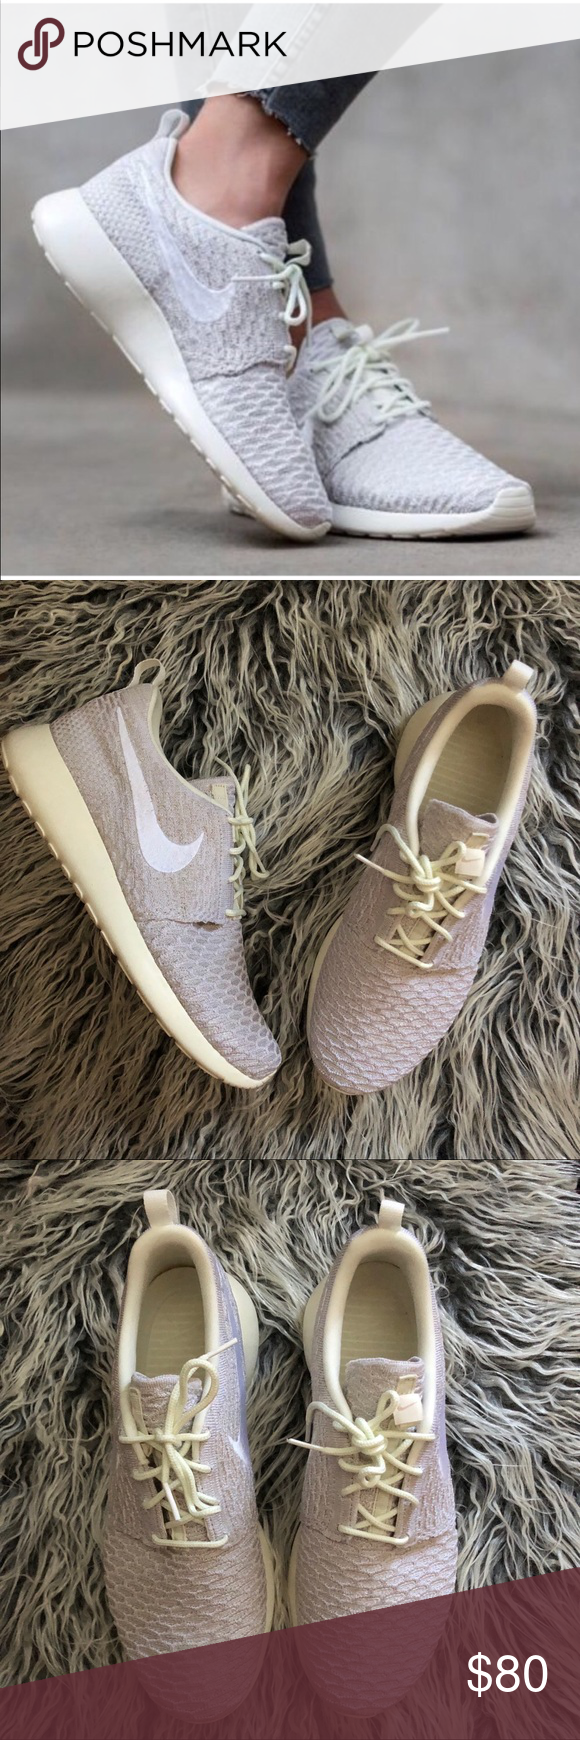 01342591c23 Women s Nike Roshe One Flyknit Brand new with the box but no lid. Runs a  bit large. Best for wide 10.5 or size 11. Off White color Nike Shoes  Athletic Shoes